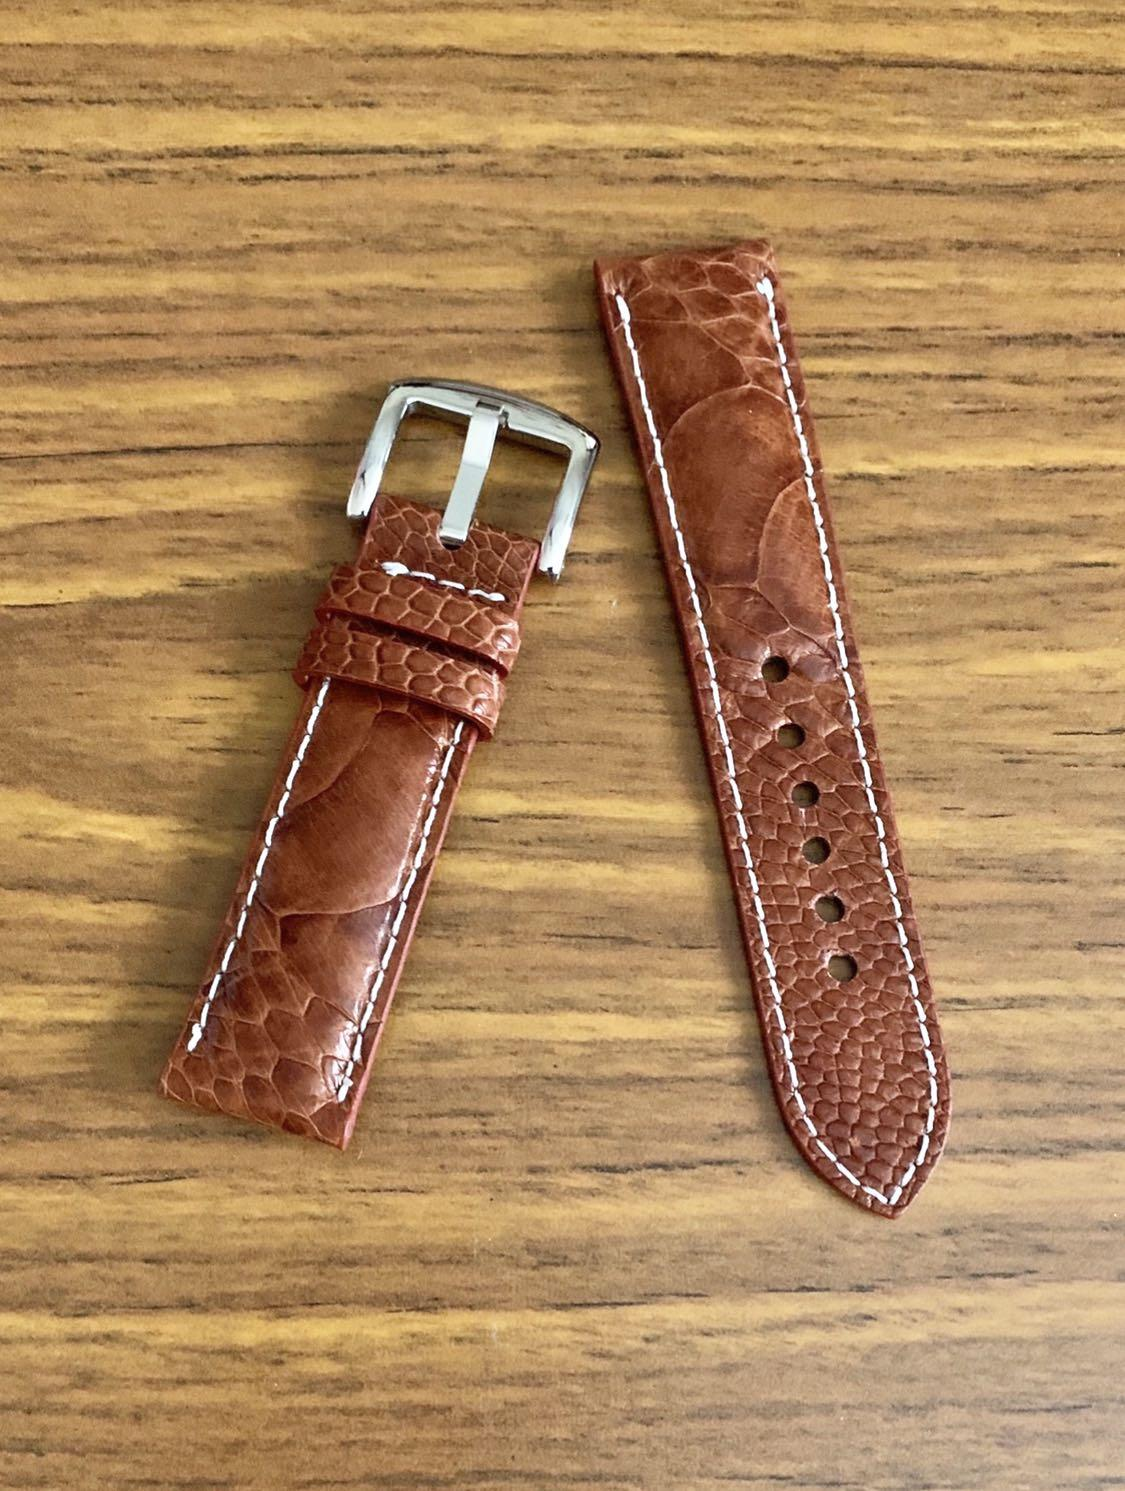 22mm/20mm Authentic Whiskey Brown Ostrich Leg (big scales) Leather Watch Strap with Ecru White stitching (one piece only, once sold- no more👍🏻)  Length- L:120mm S:75mm - ONLY PIECE!!😊 (we have other 22mm lug on discount, feel free to see 👍🏻)